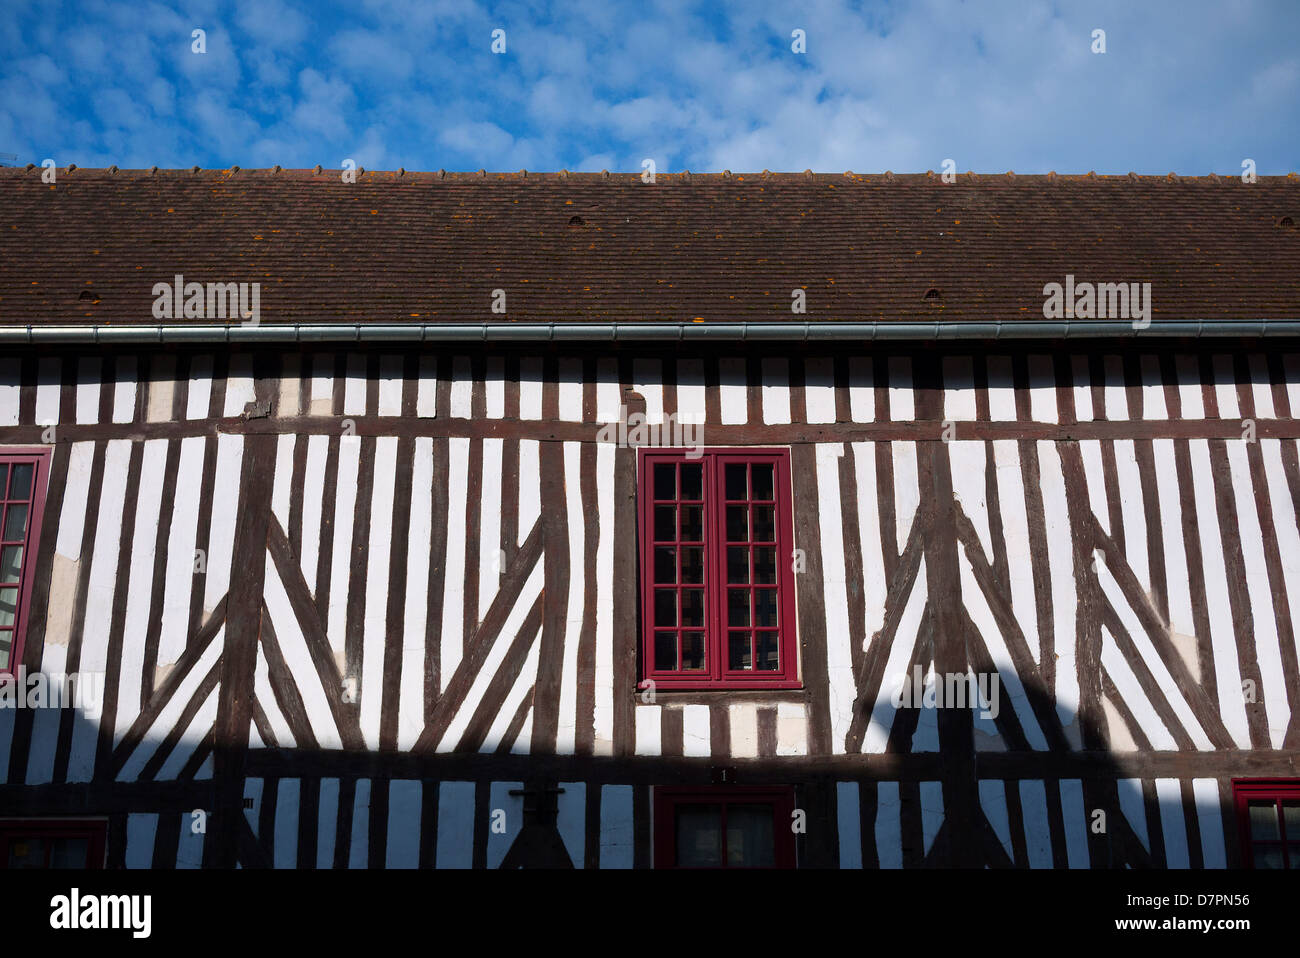 Timber framed house in Beuvron-en-Auge, France. - Stock Image